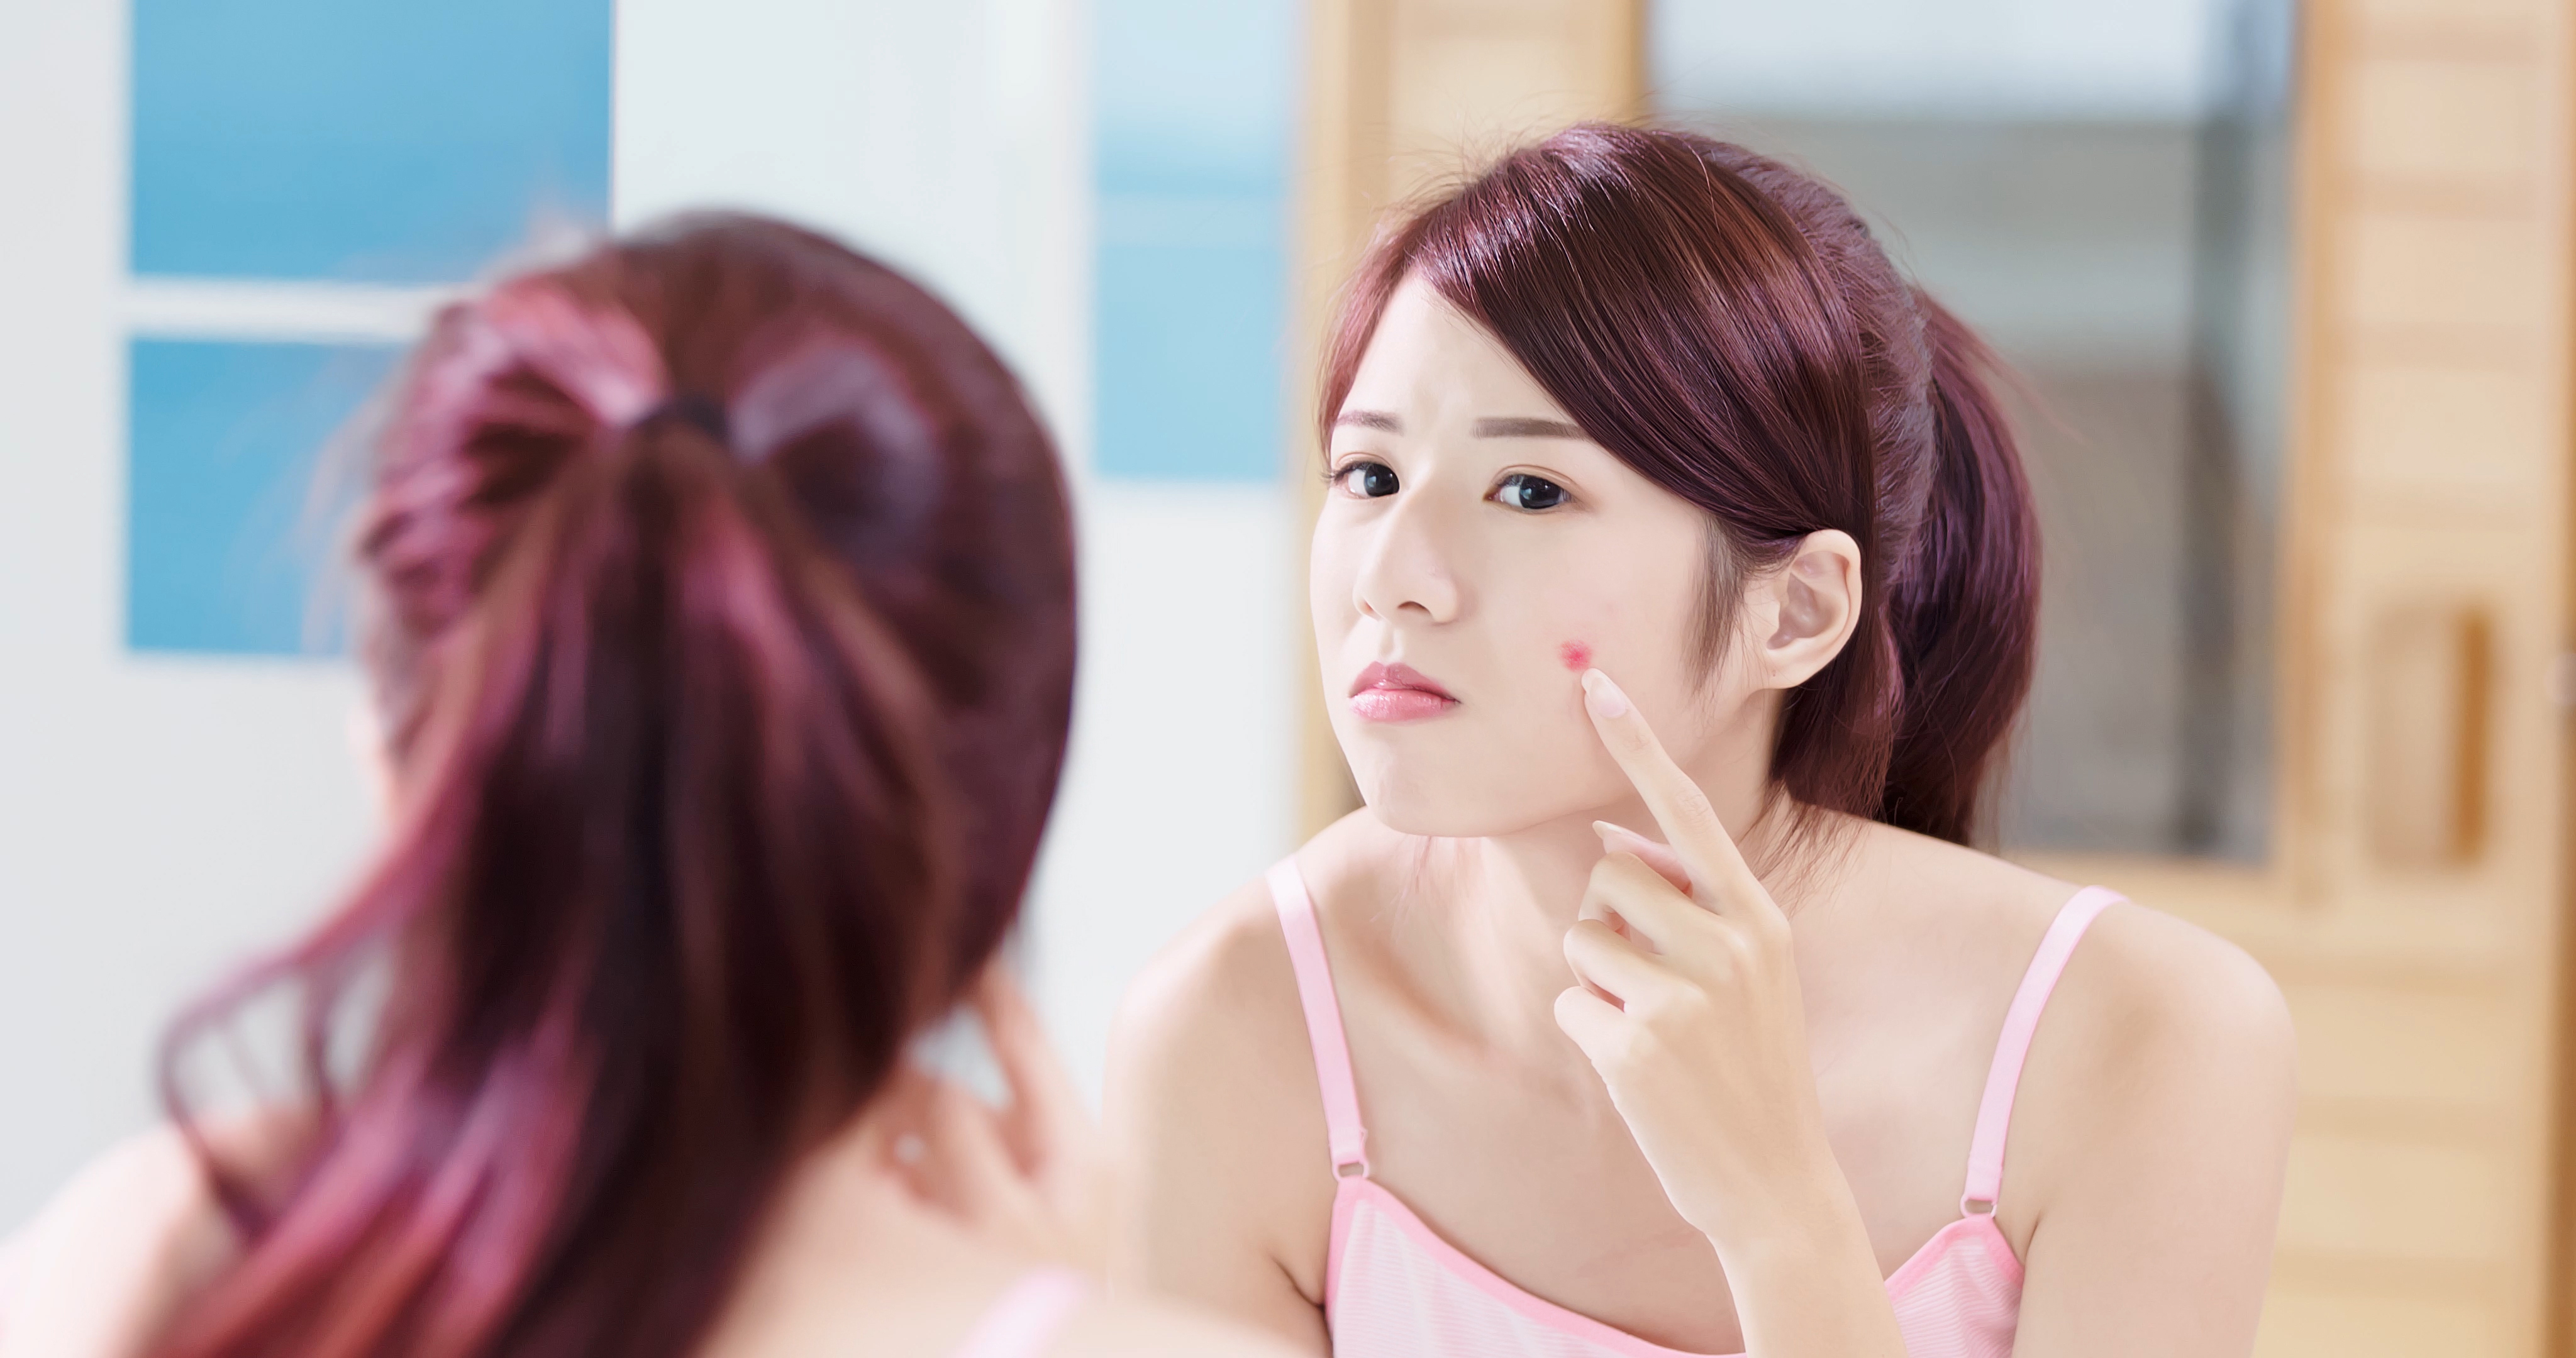 girl with pimple looking in mirror